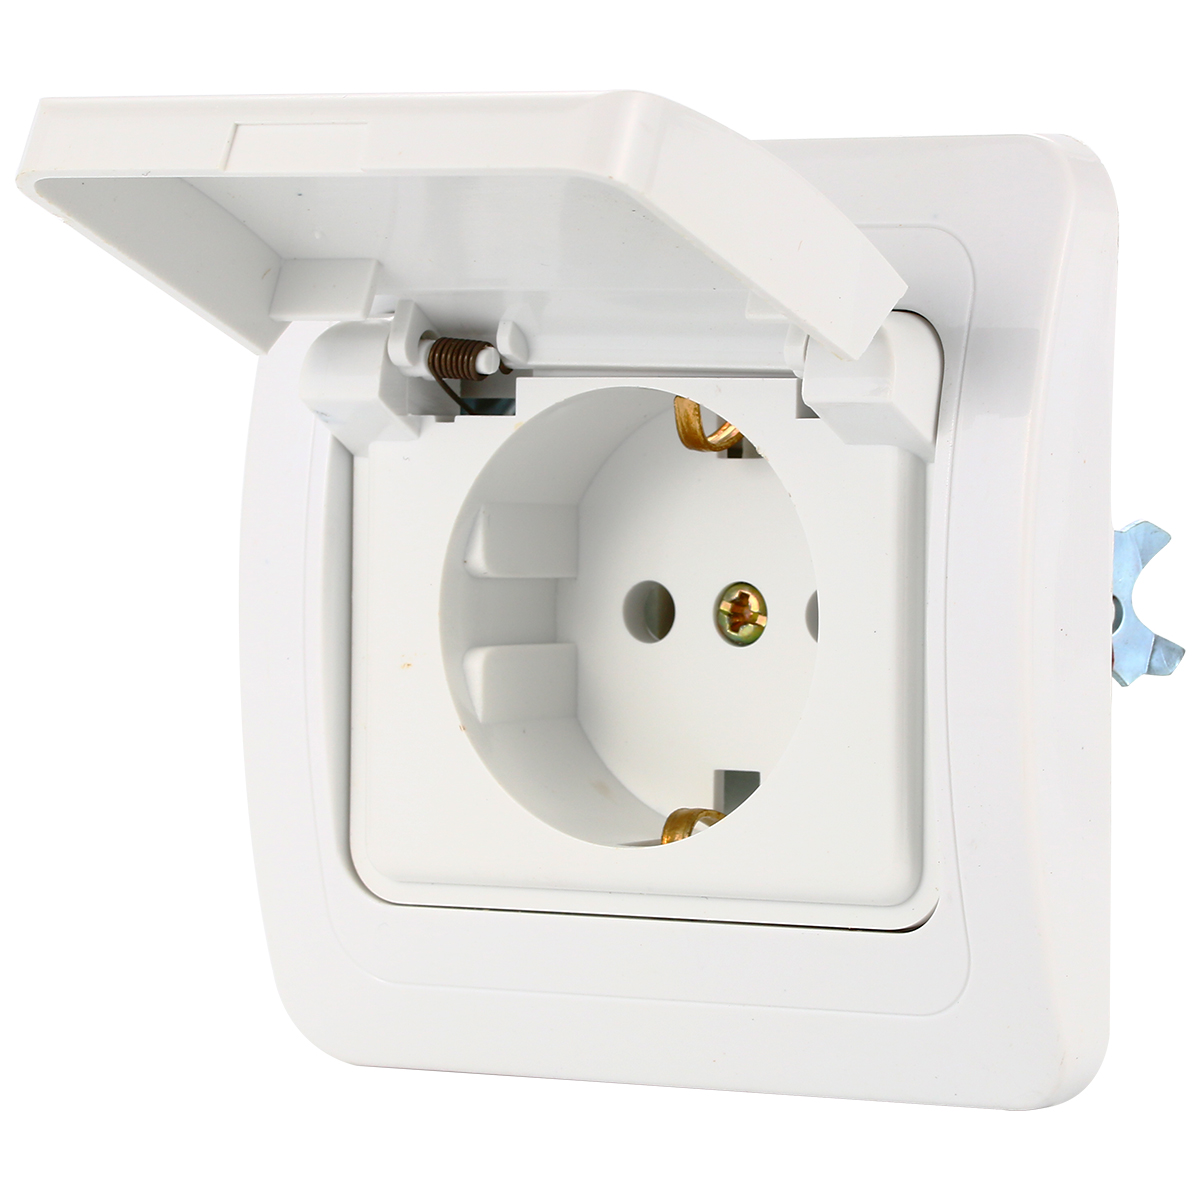 small resolution of 16a 250v korea wiring receptacle power outlet schuko germany16a 250v korea wiring receptacle power outlet schuko